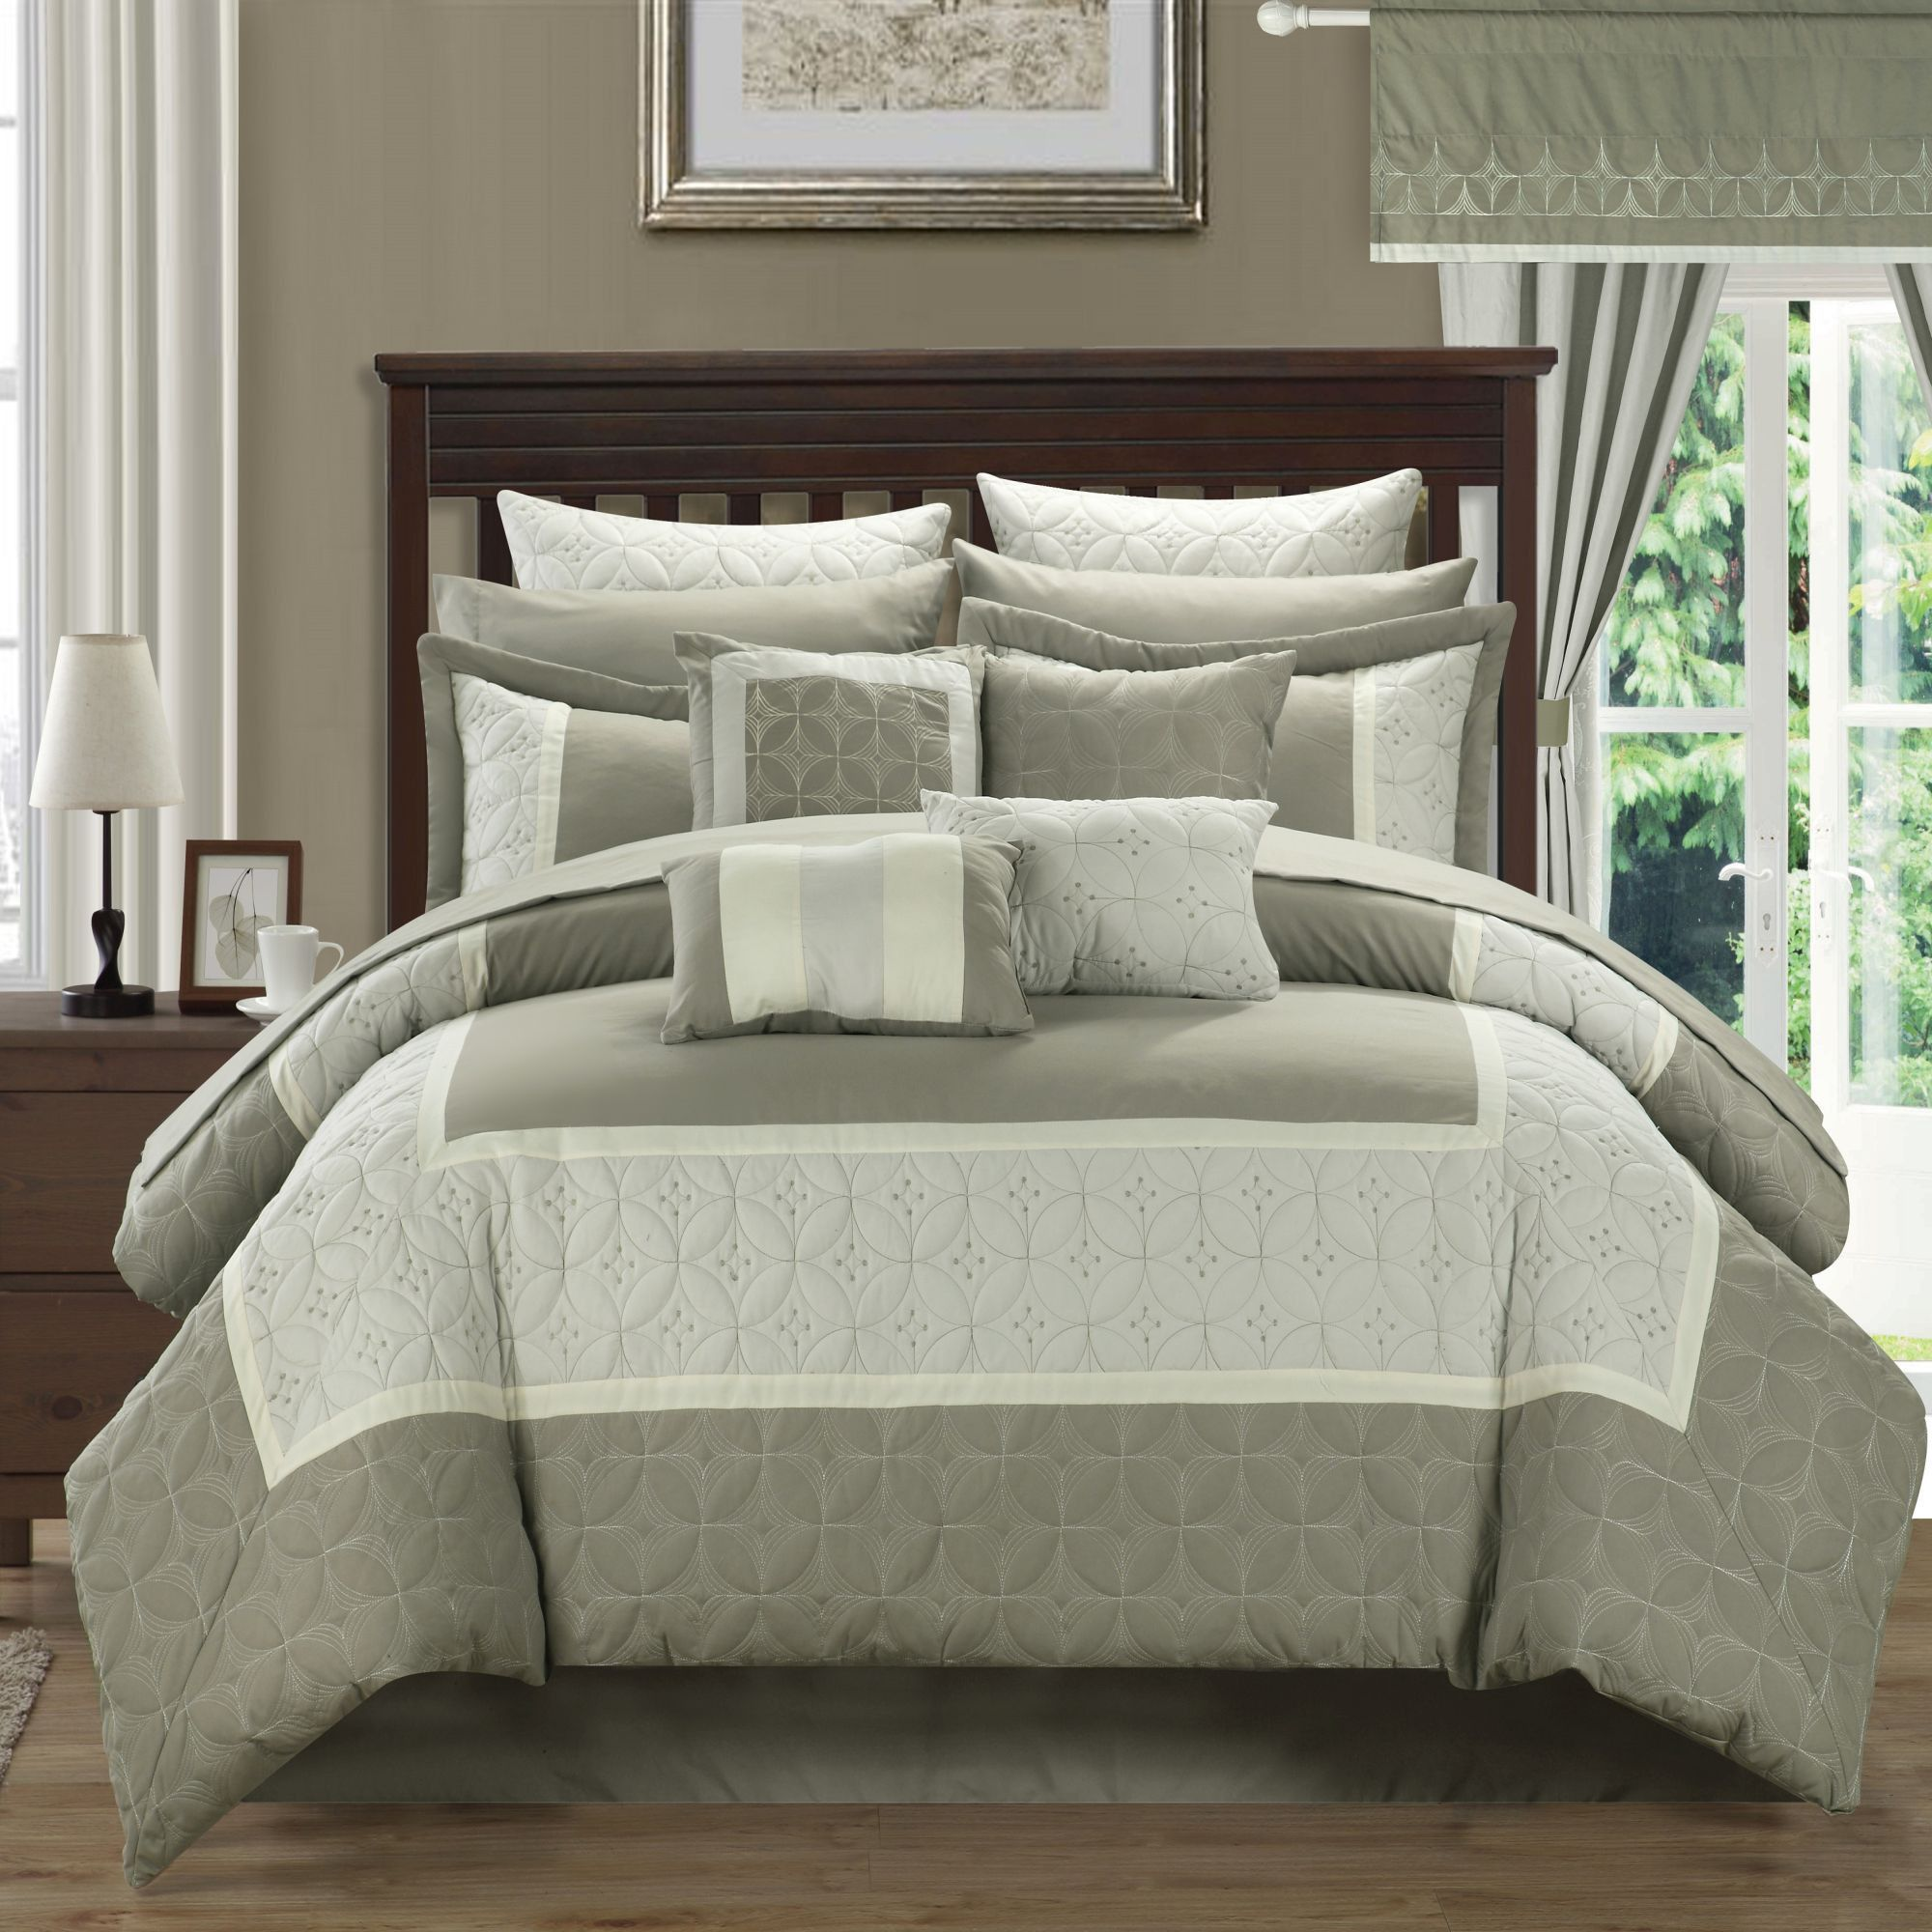 Aida Quilted 24 or 25 Piece Room In A Bag Comforter Bed Sheet Set Taupe